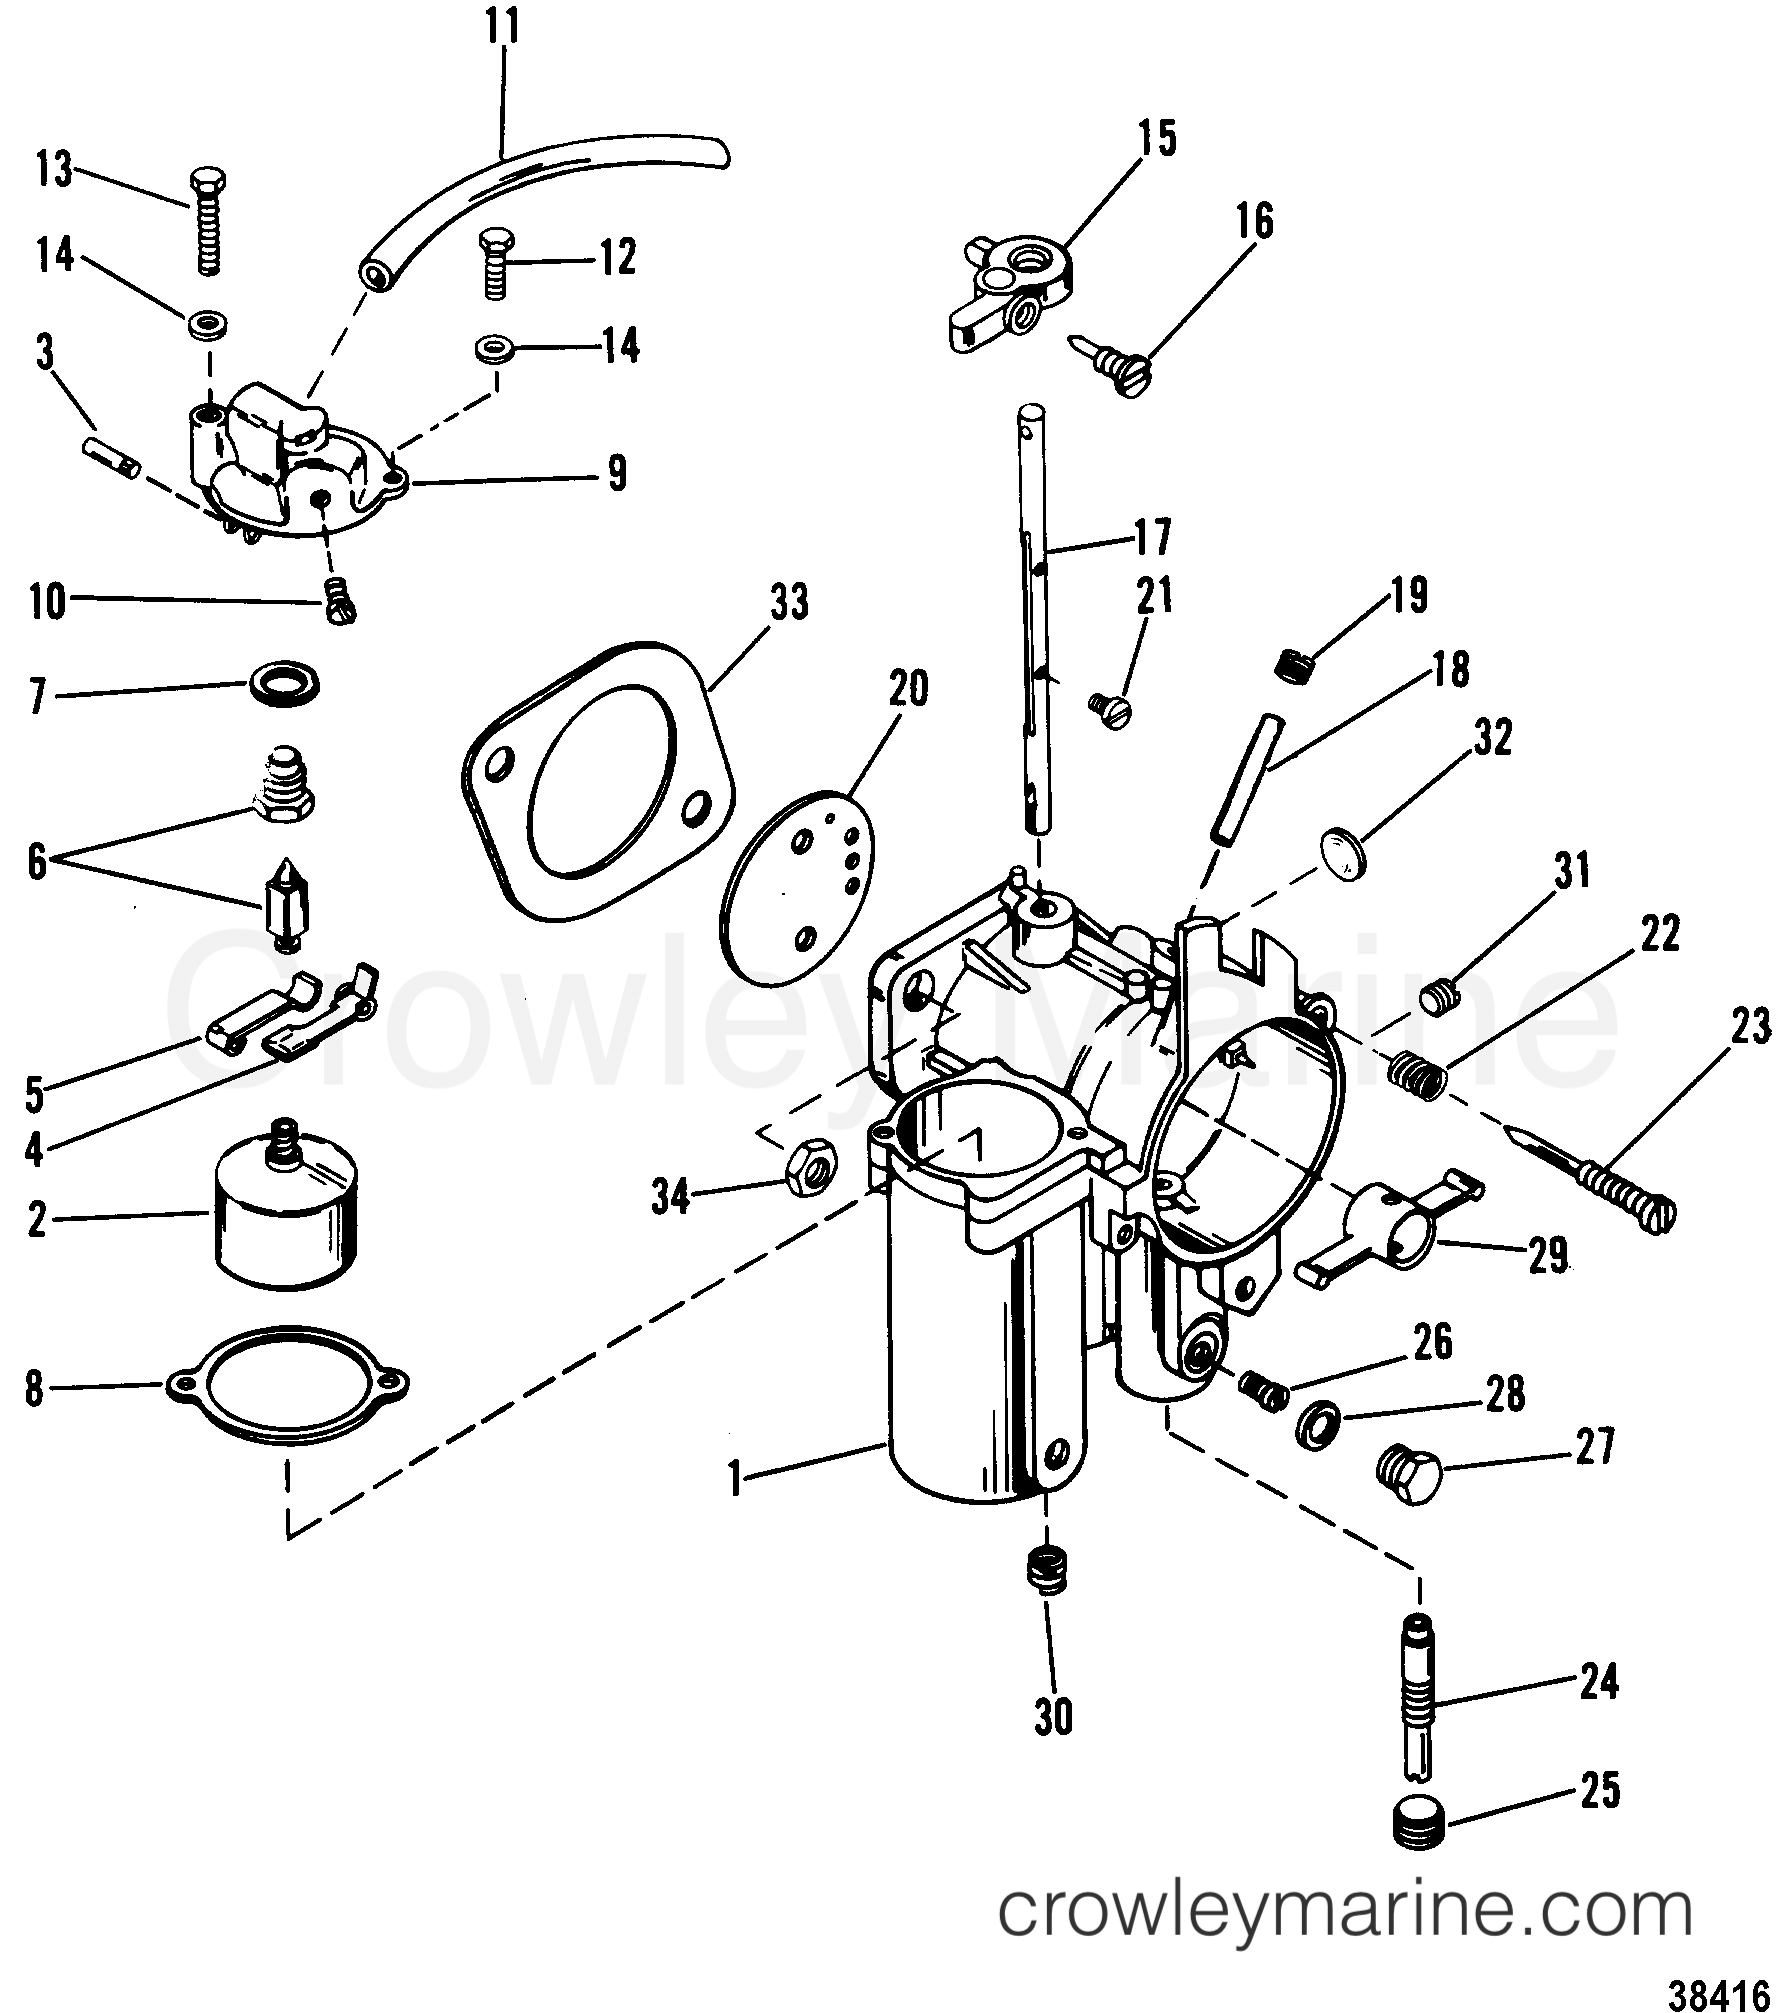 50 Hp Mercury Outboard Schematics